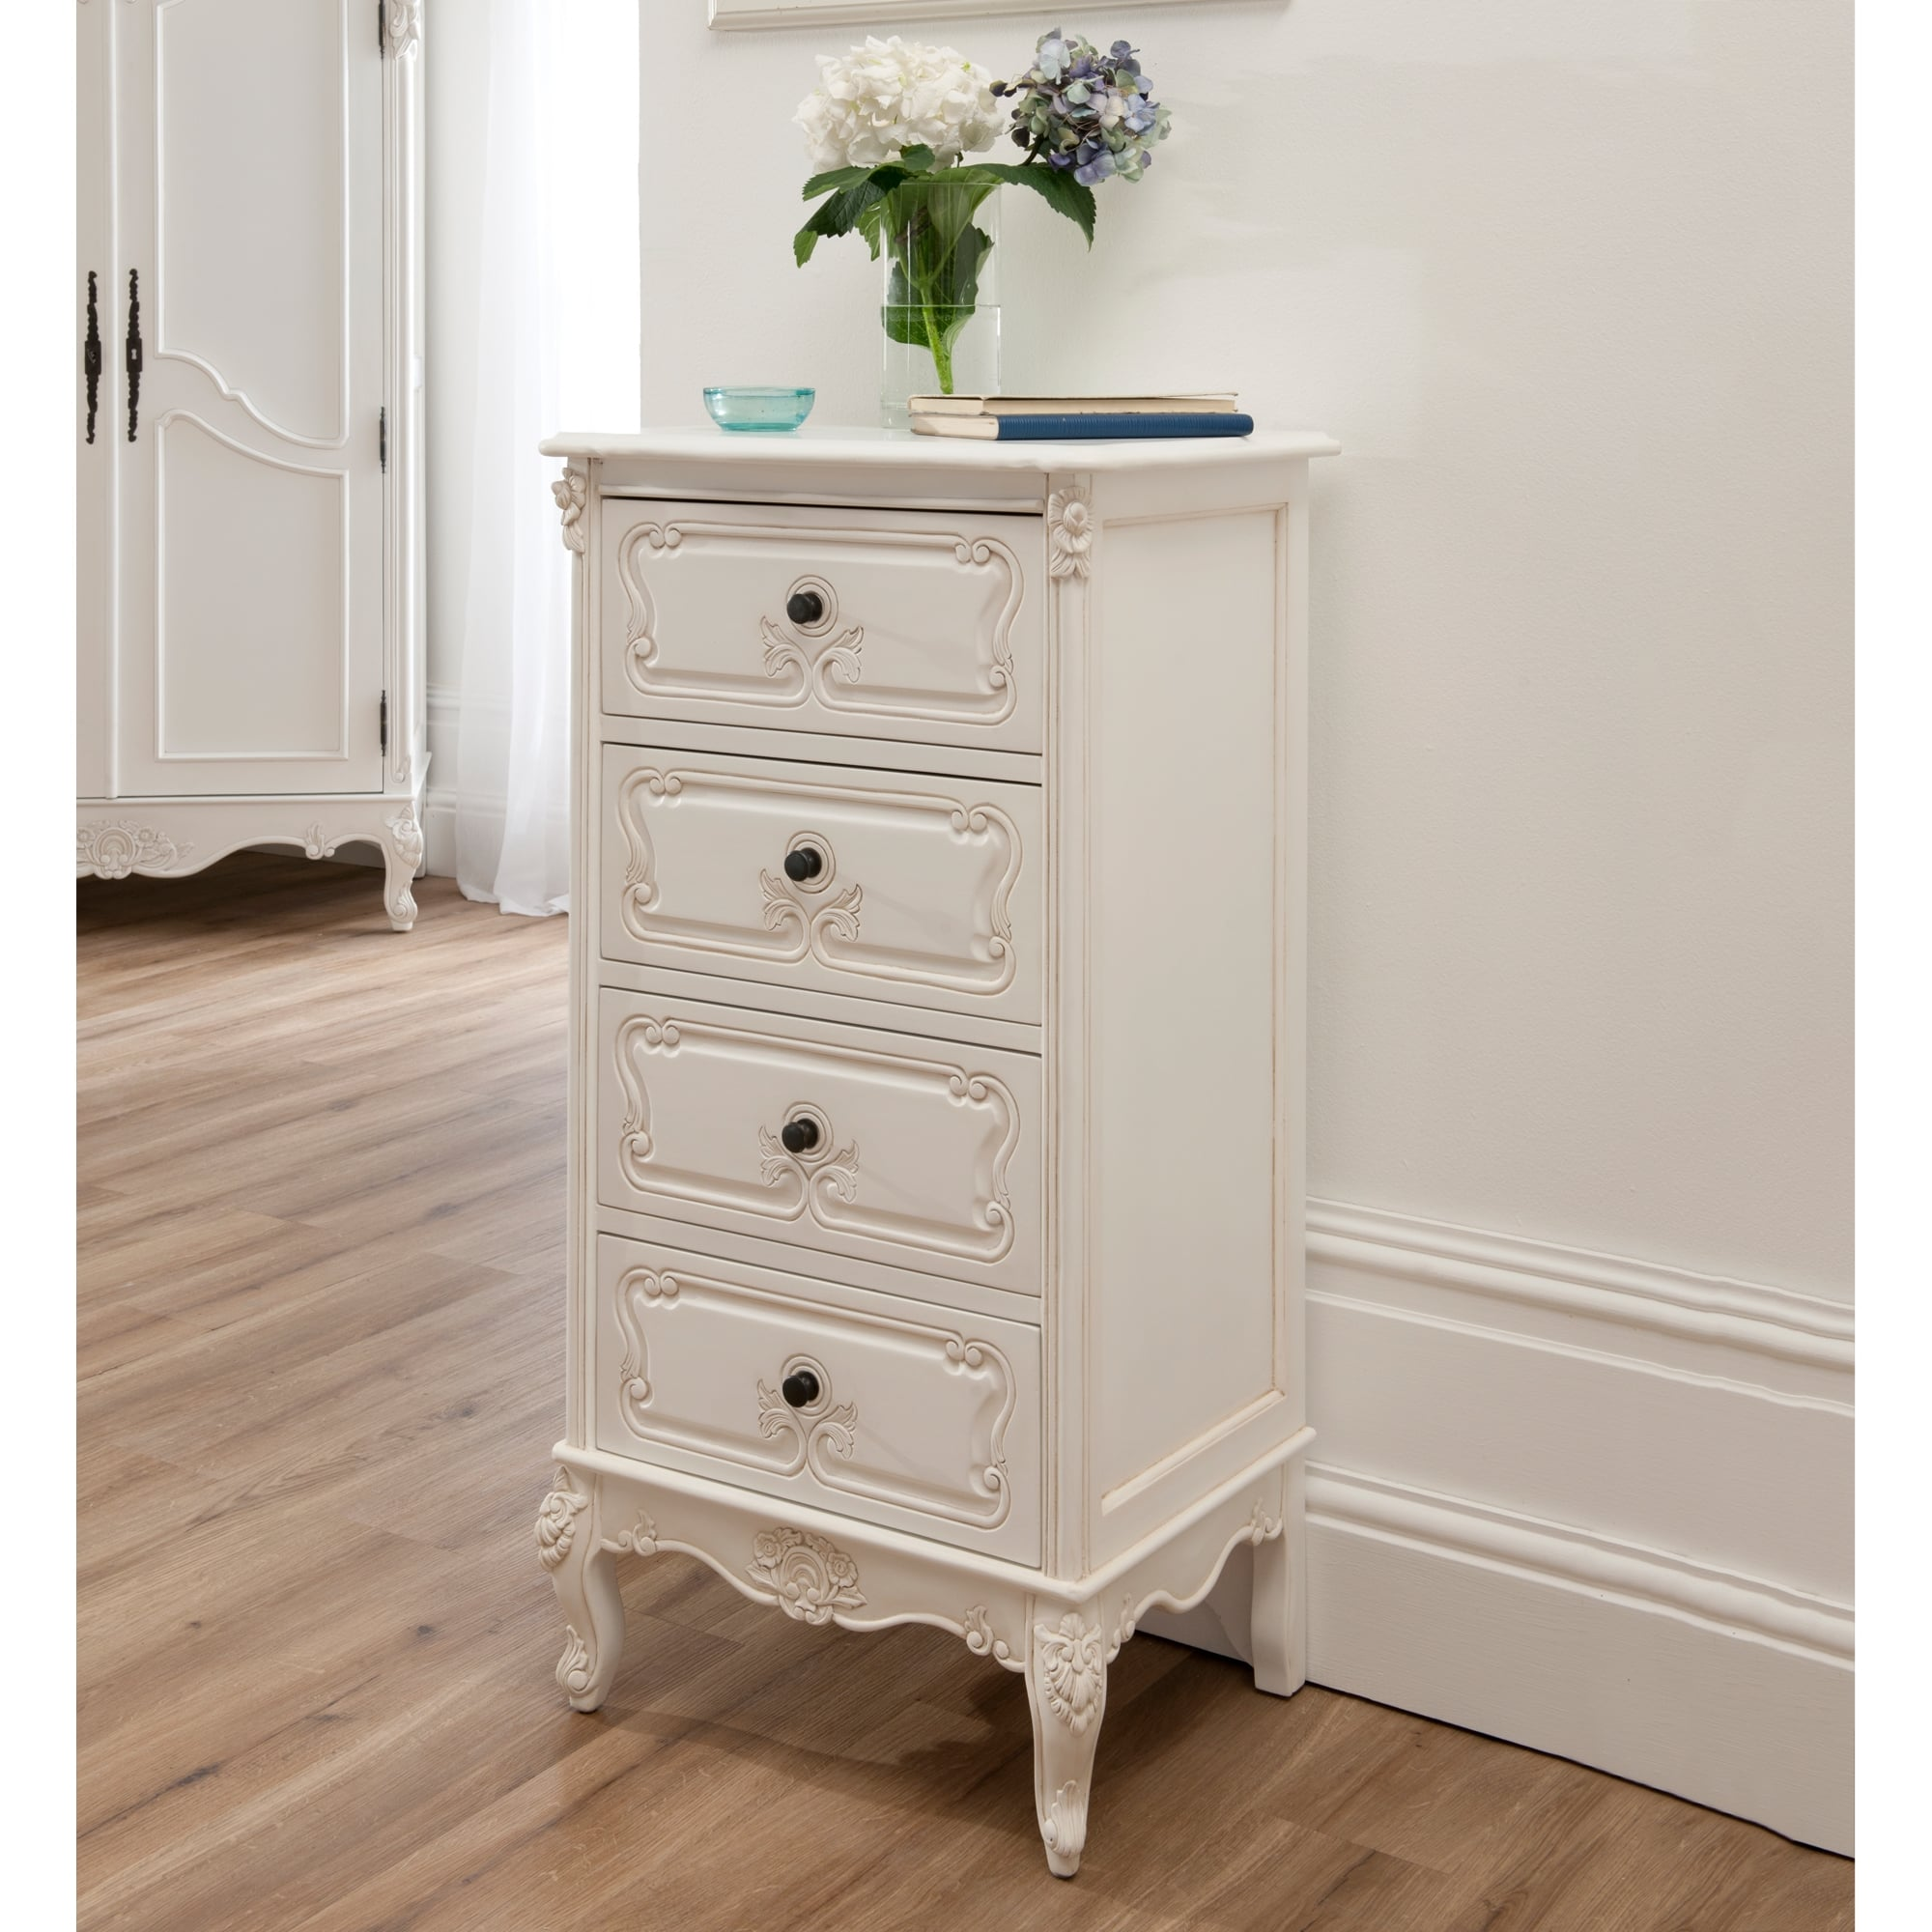 This Baroque Antique French Tallboy Chest | Shabby Chic